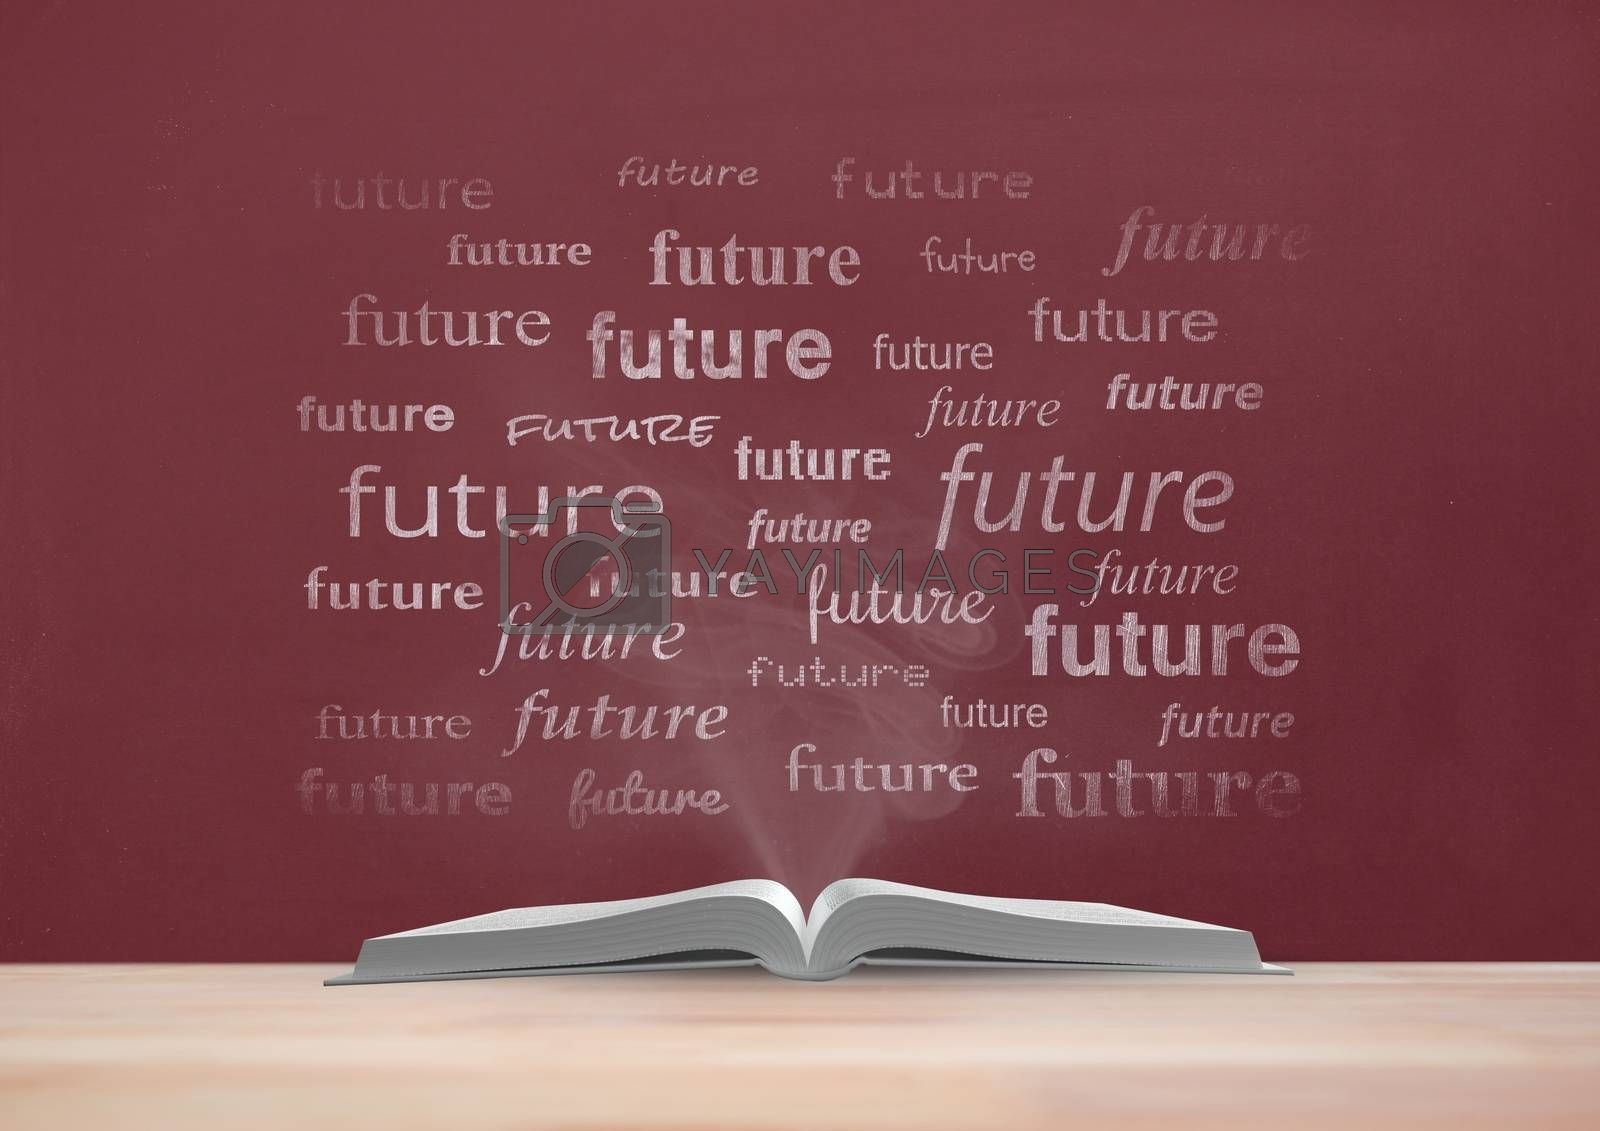 Book on the table against red blackboard with future text by Wavebreakmedia